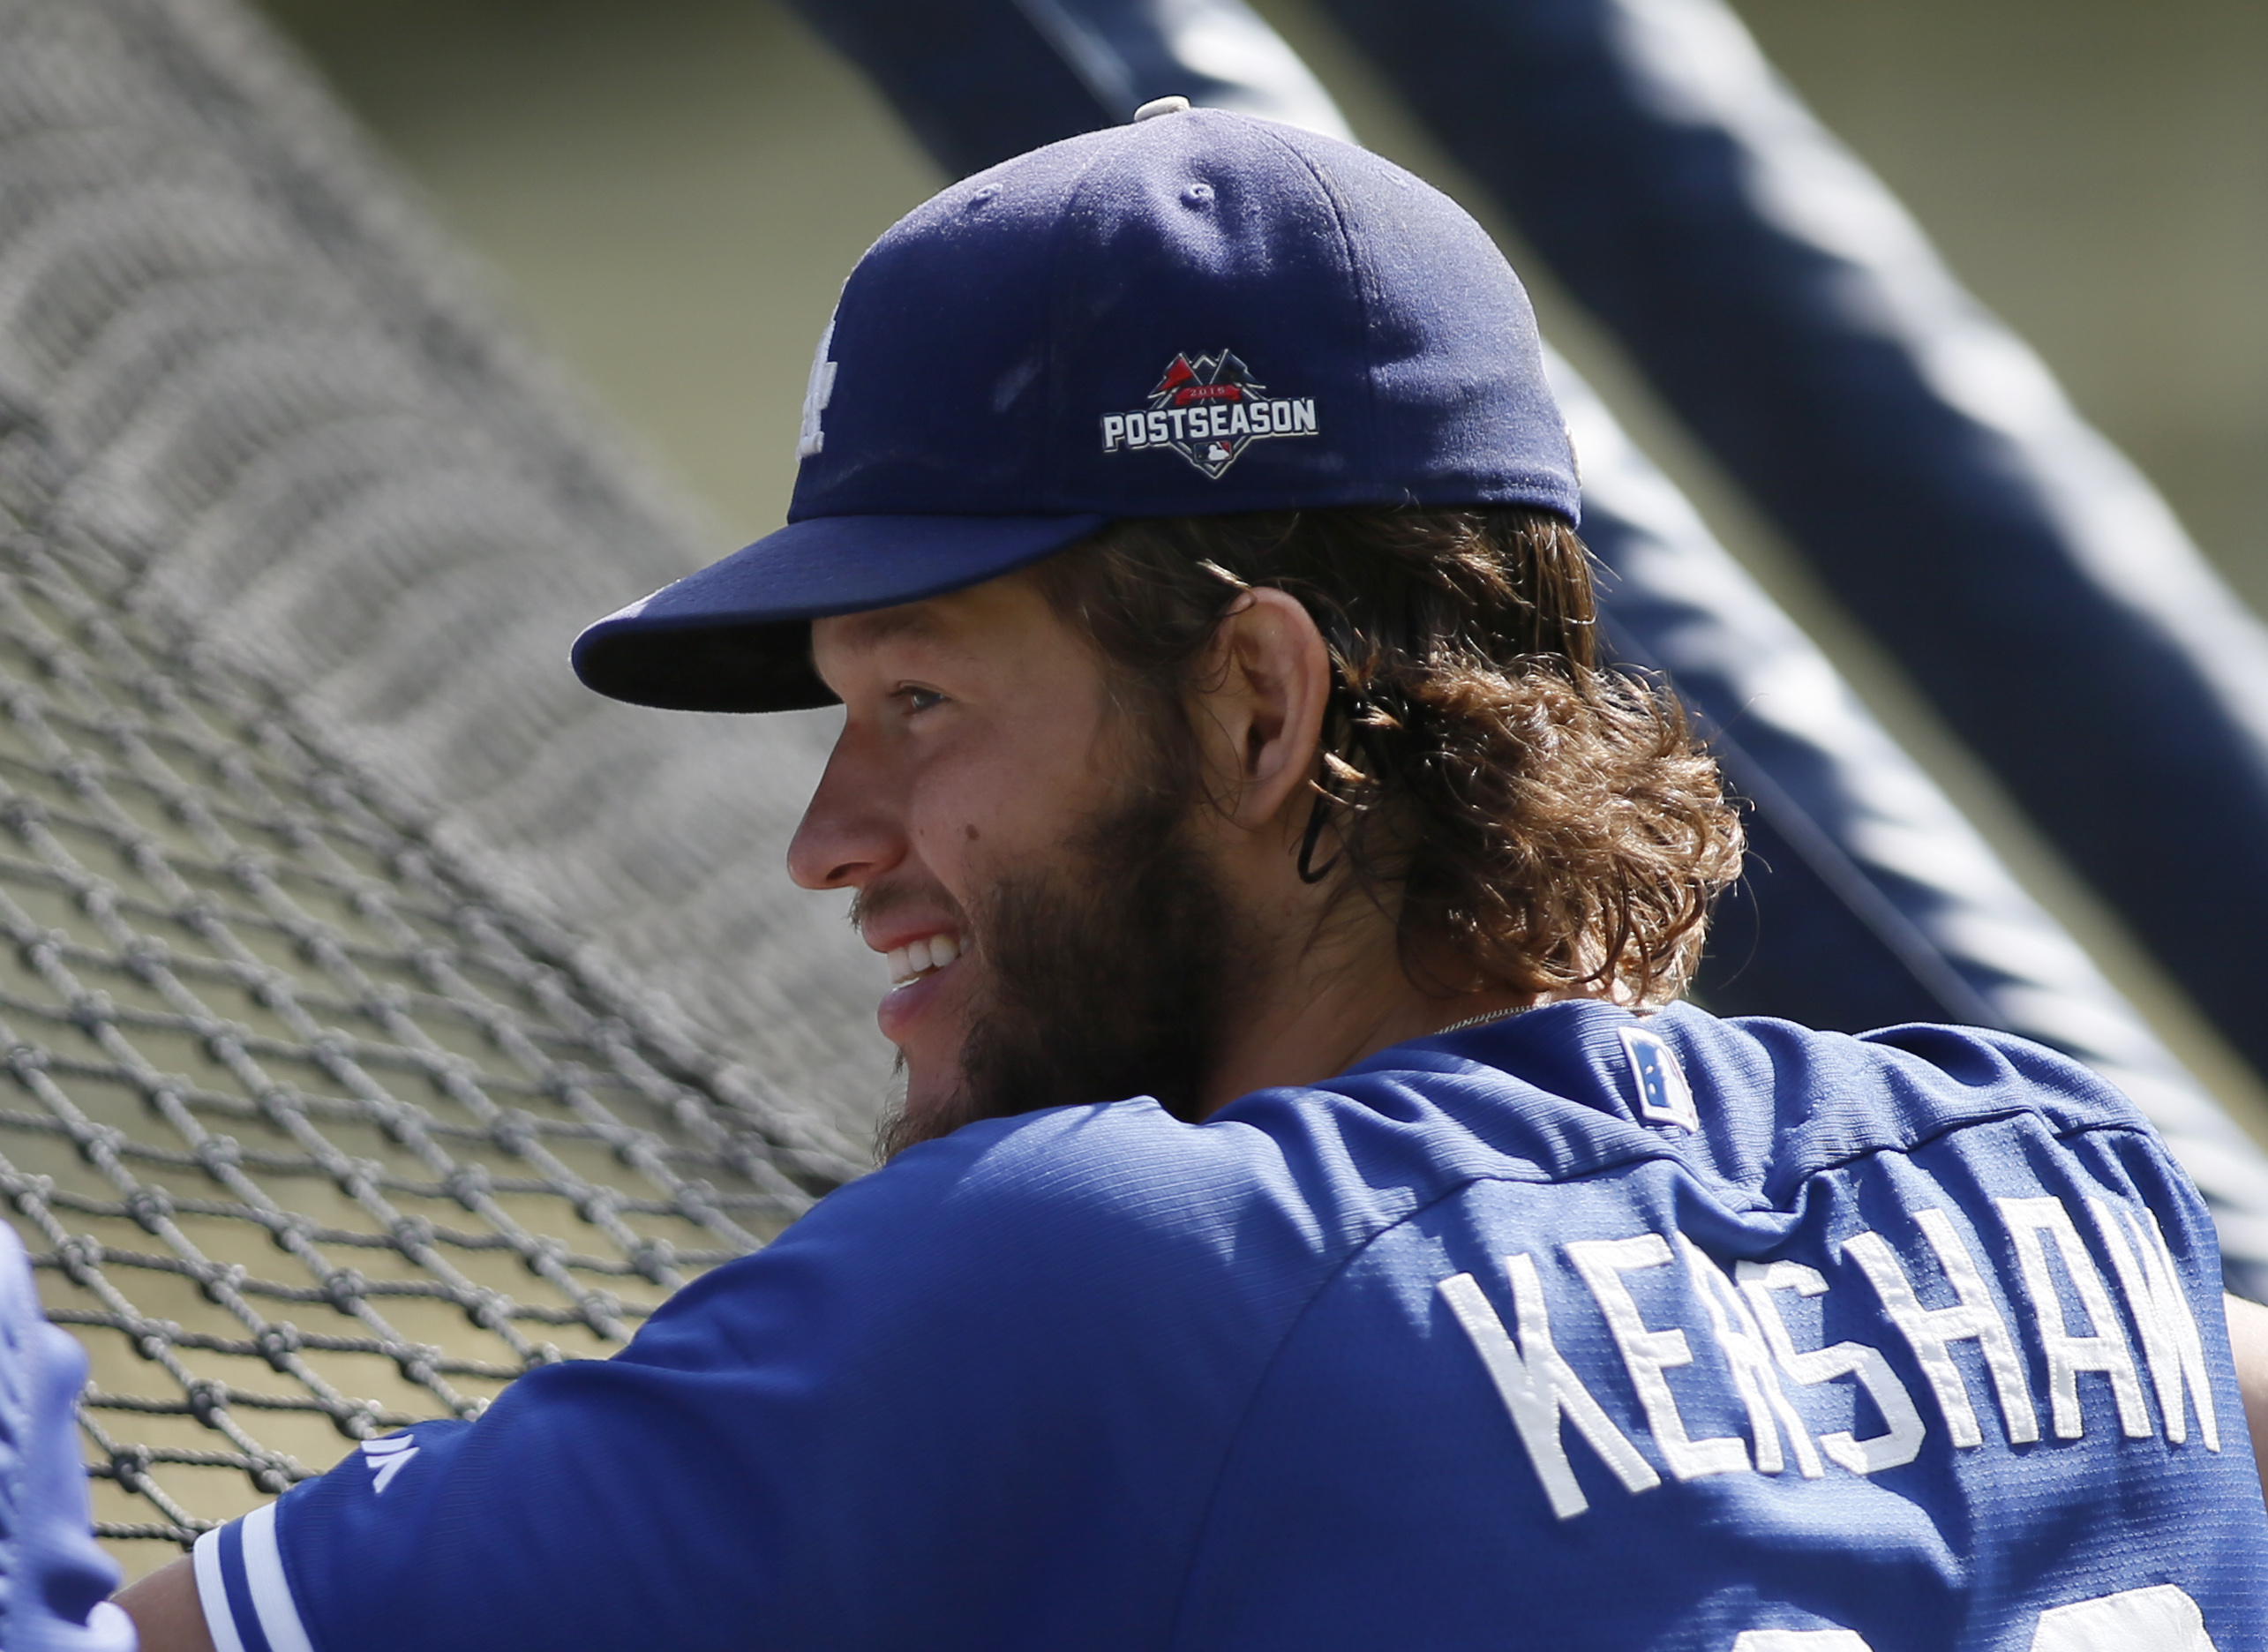 Los Angeles Dodgers pitcher Clayton Kershaw looks on during practice for the upcoming NLDS playoff baseball series against the New York Mets, Tuesday, Oct. 6, 2015, in Los Angeles. Their NLDS best of five playoff series begins Friday, Oct. 9, at Dodger St